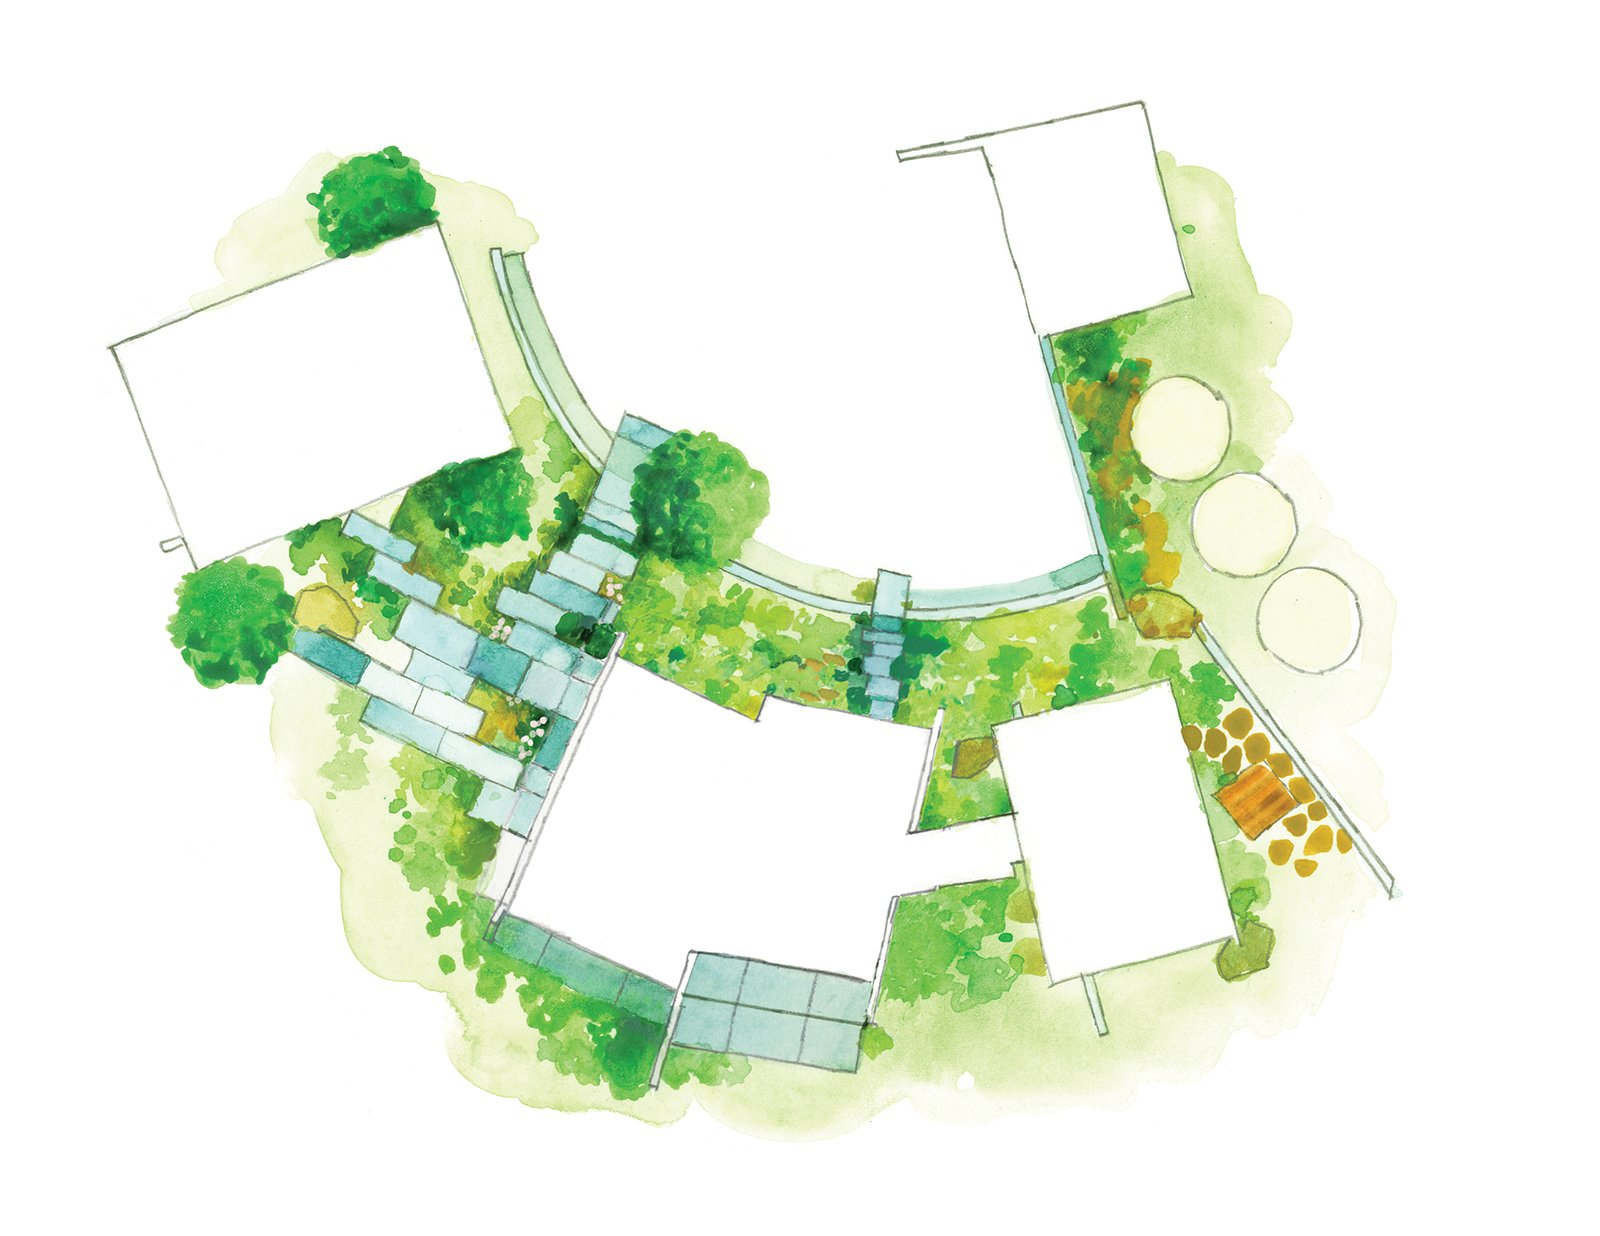 Butterfly House Floor Plan  Photo 11 of 11 in Retirement Never Looked Better and More Sustainable